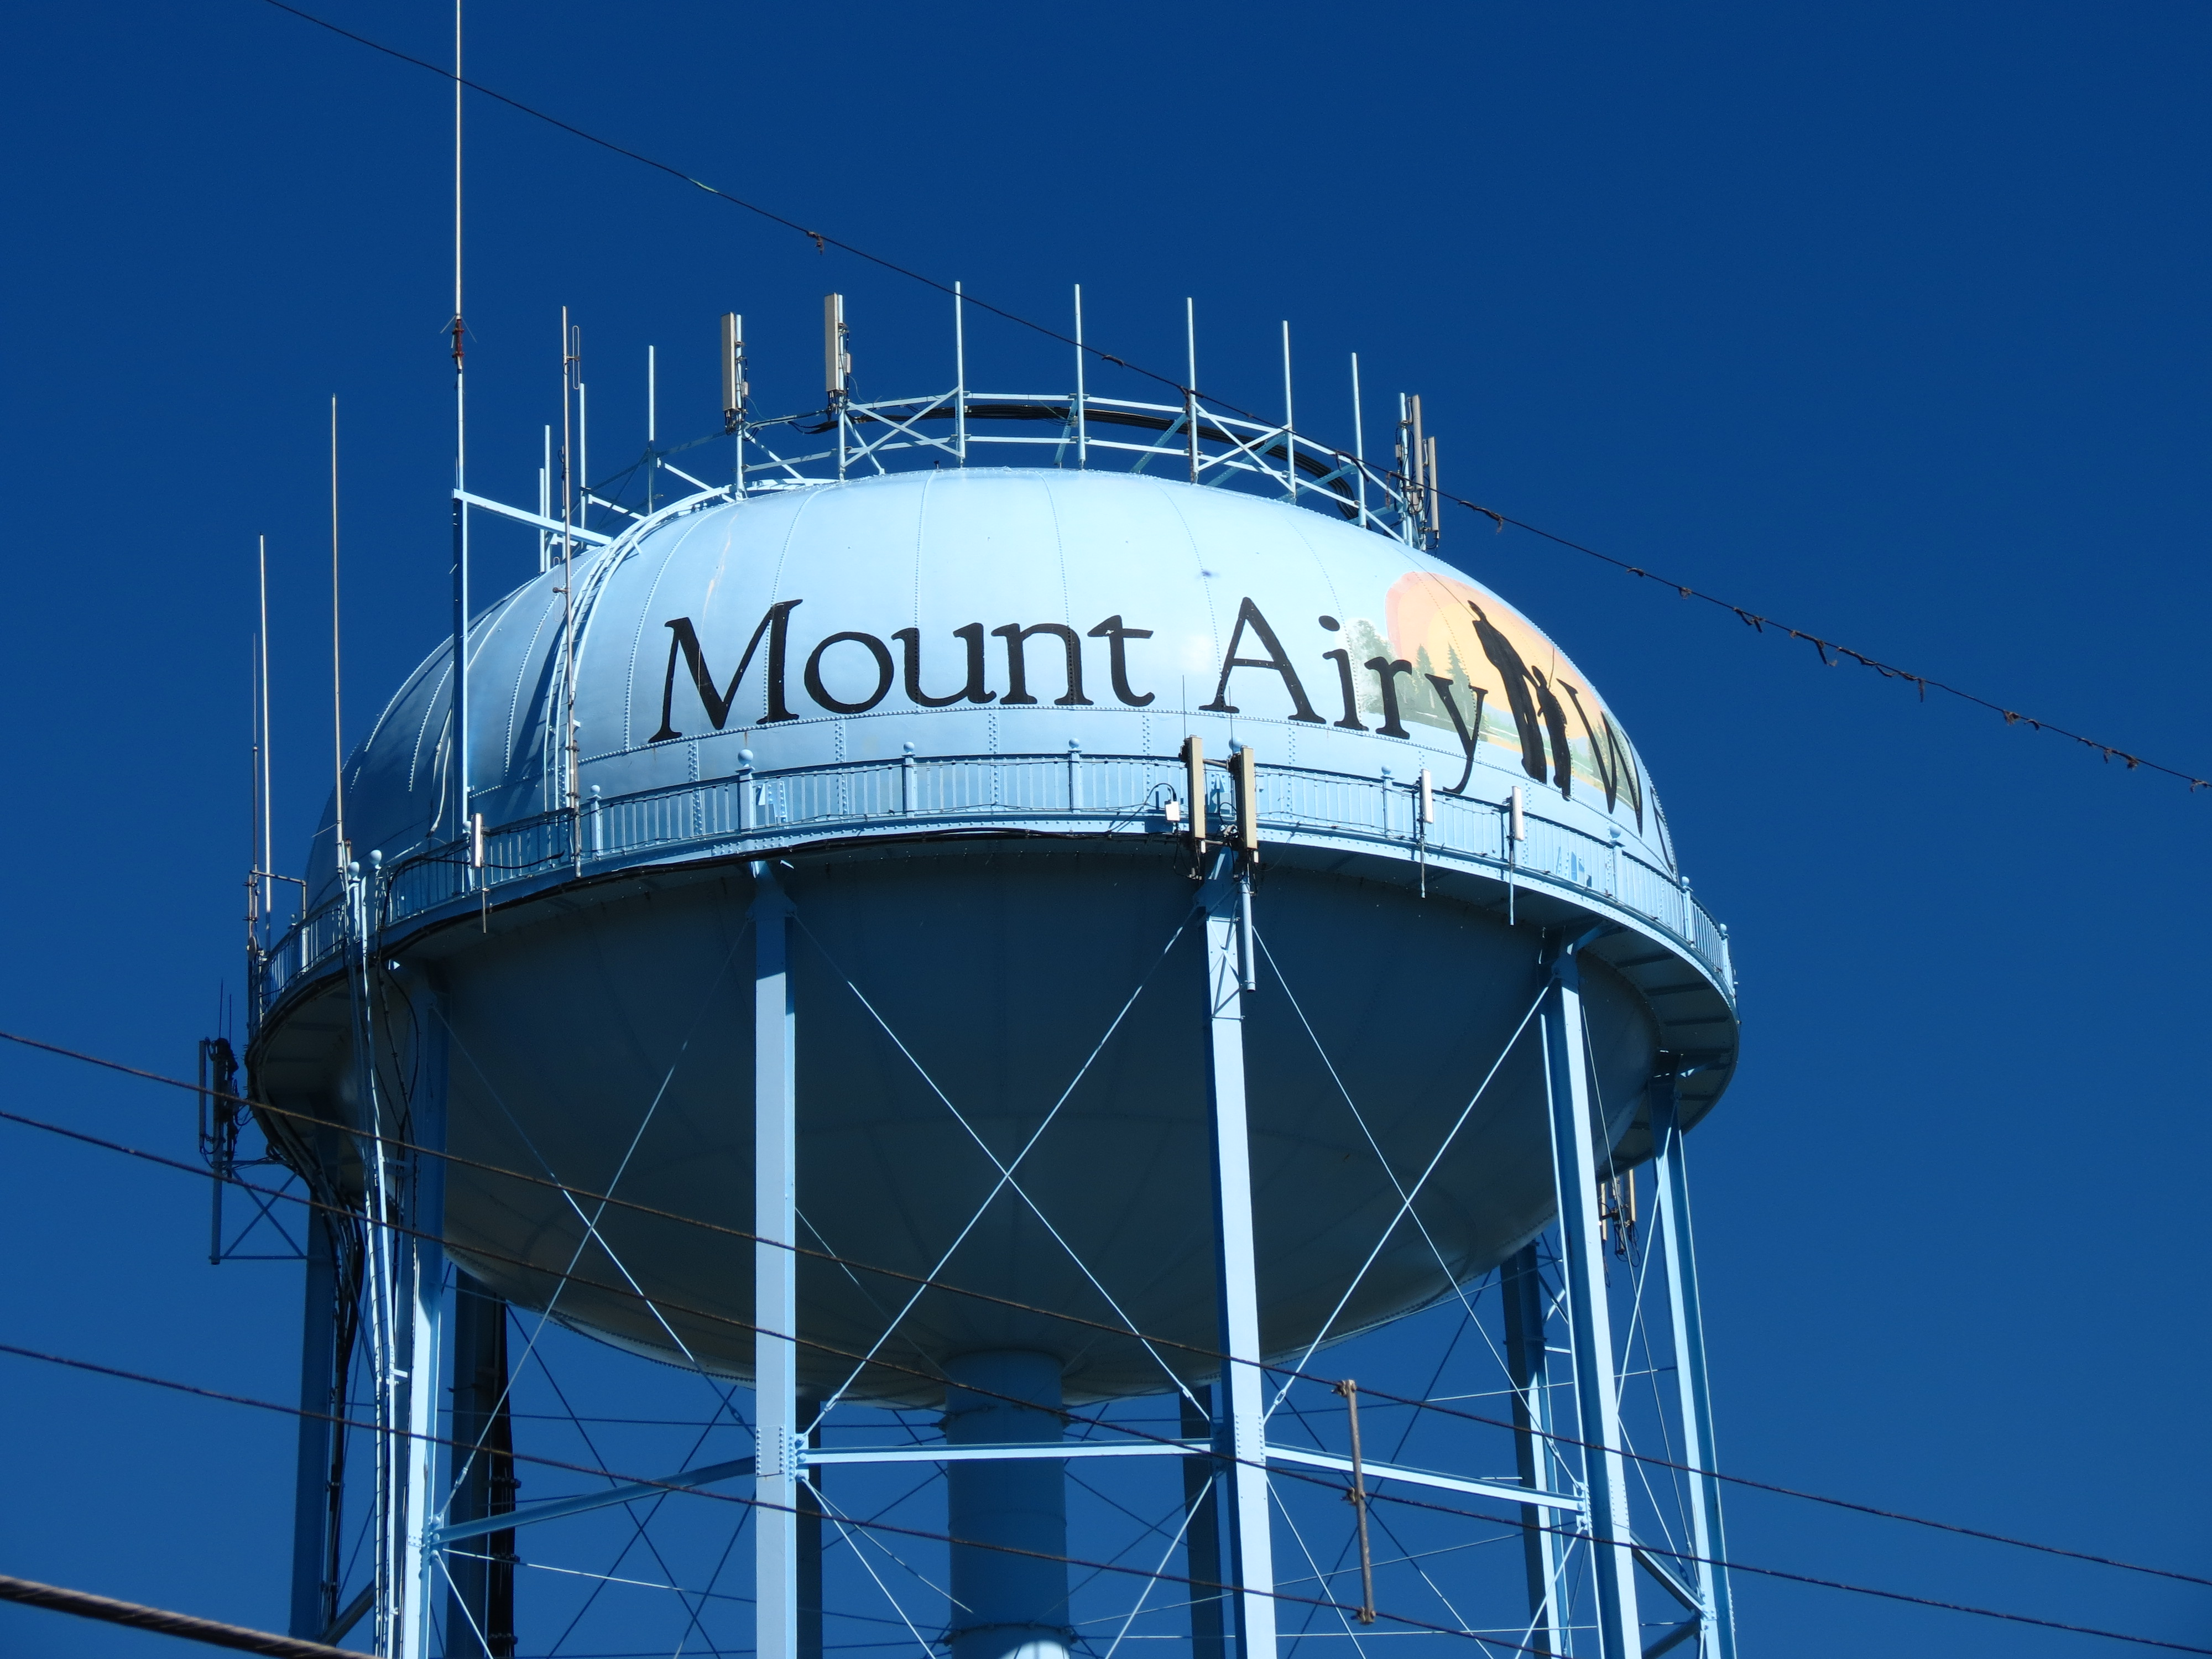 Mount Airy Nc And Andy Griffith Tiger Tales